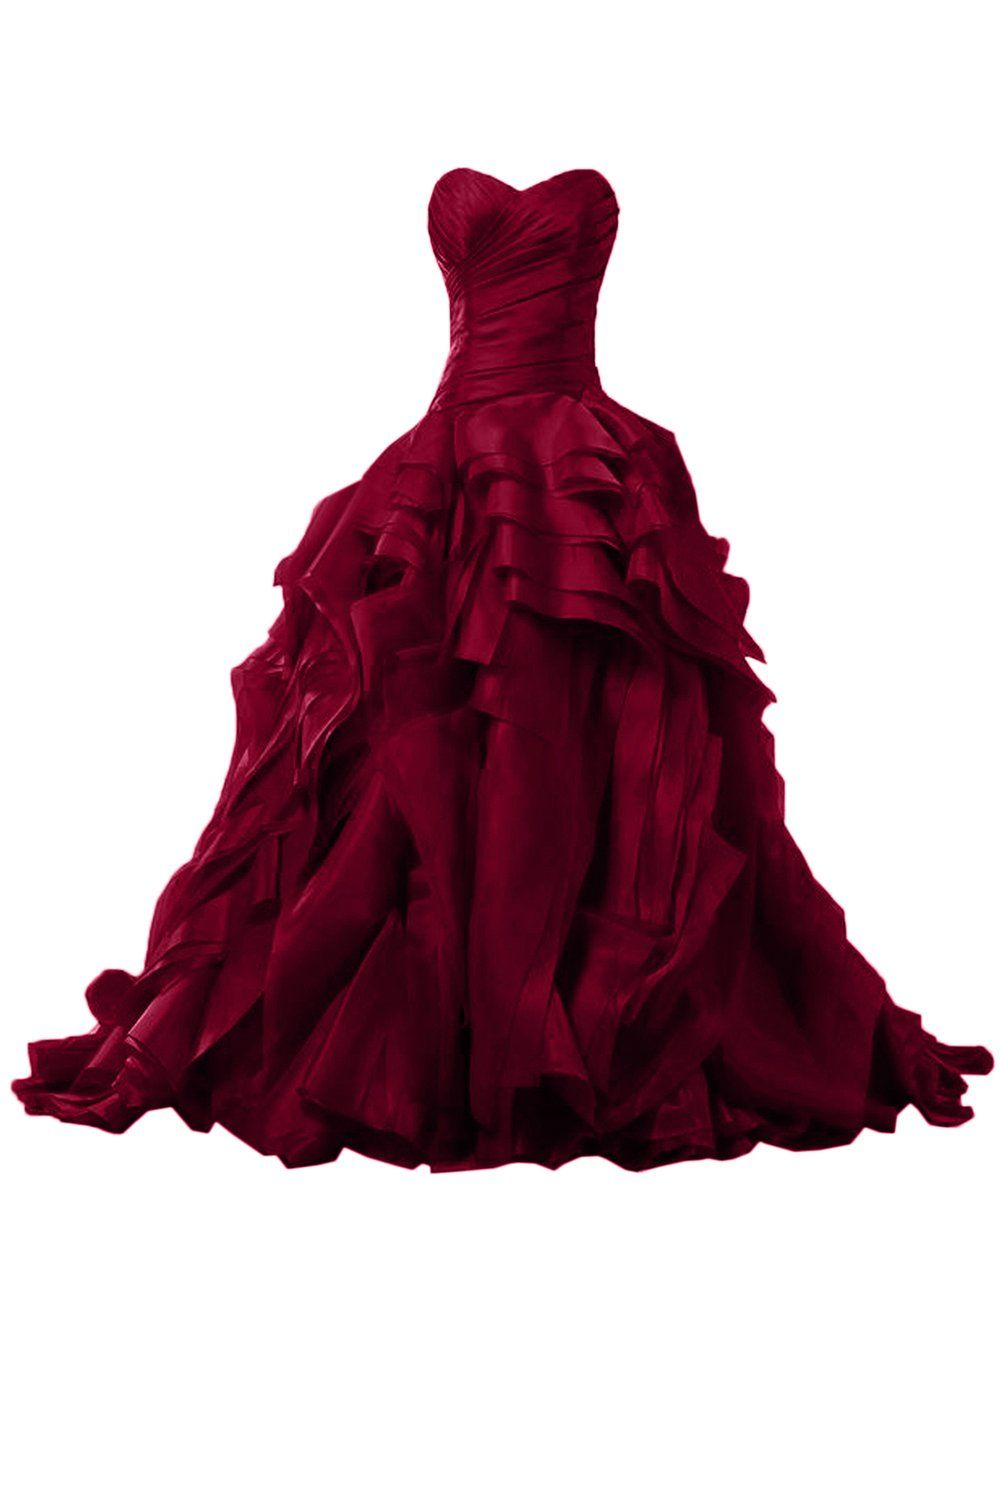 Sunvary luxurious burgundy ball gown quinceanera dresses for prom